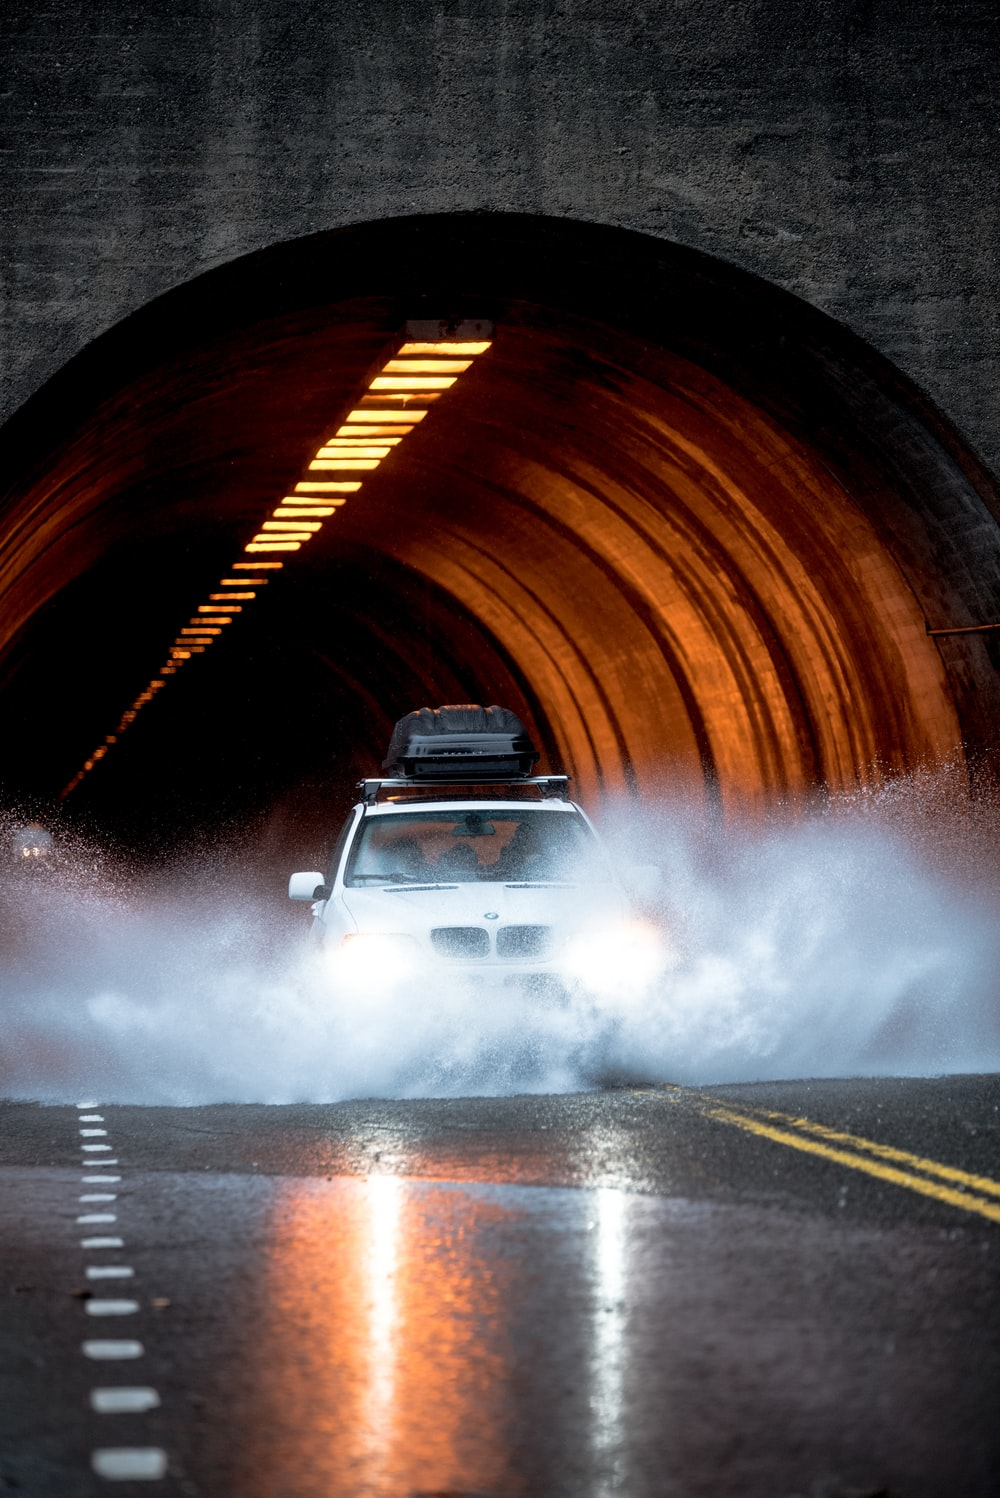 white BMW car crossing asphalt road in front of concrete tunnel